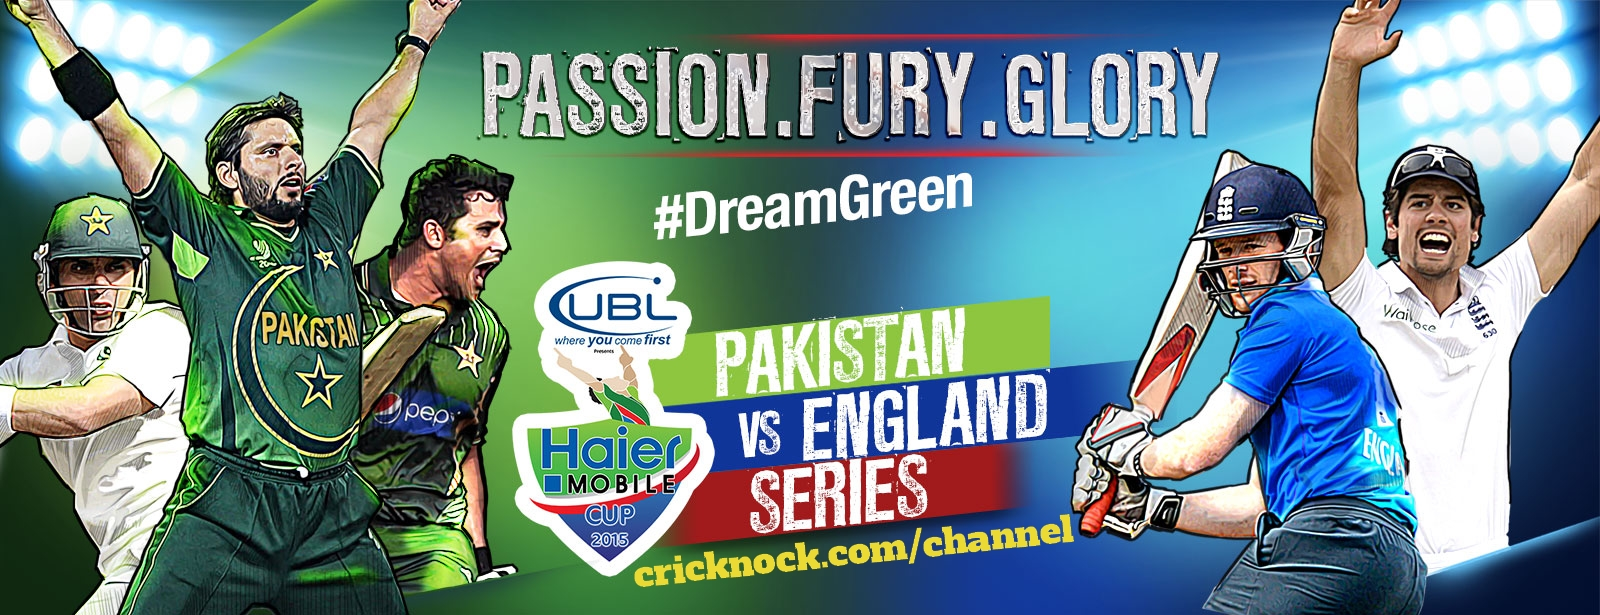 Pakistan Vs England 2015 Fixtures